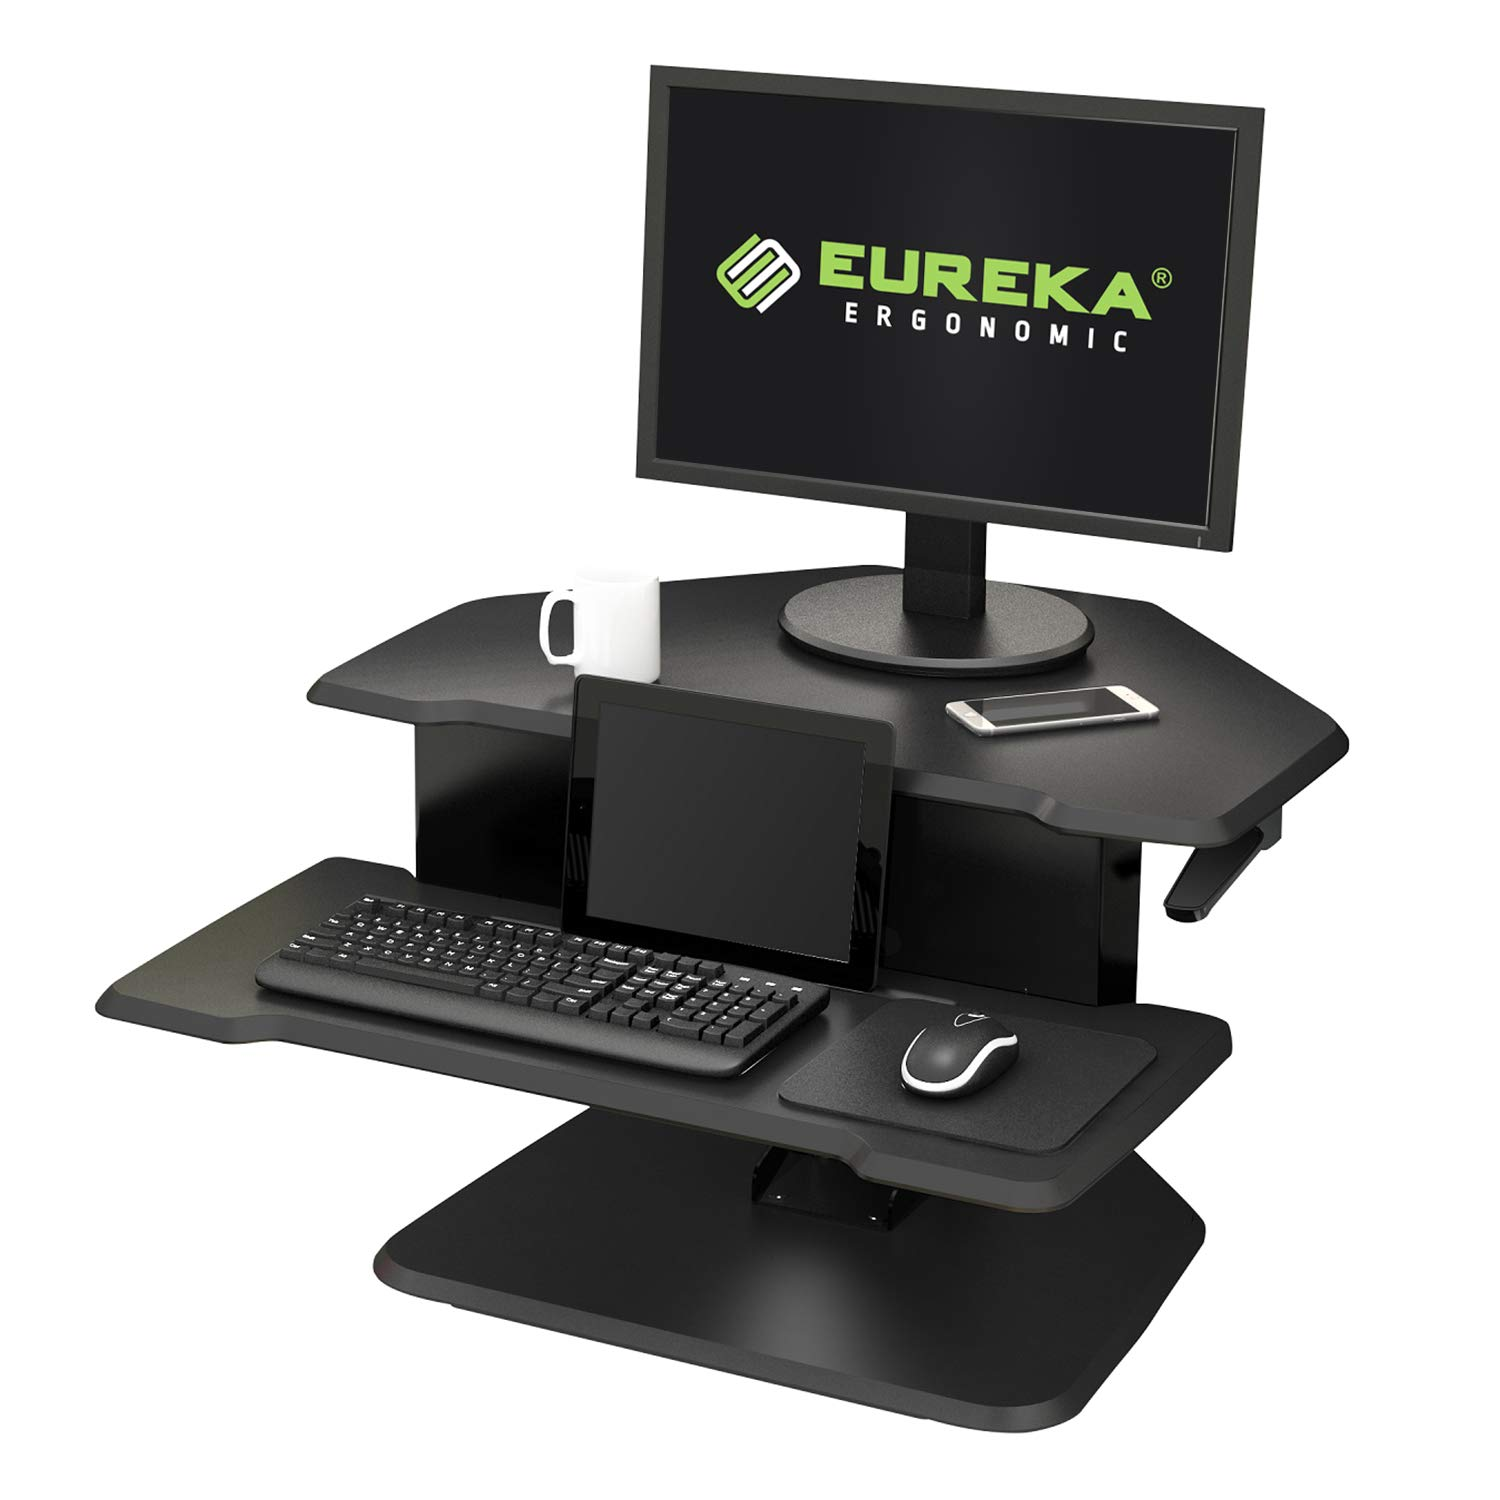 Eureka Ergonomic 28'' Height Adjustable Sit-Stand Desk, Corner Desk - with Keyboard Tray Black by Eureka Ergonomic (Image #1)